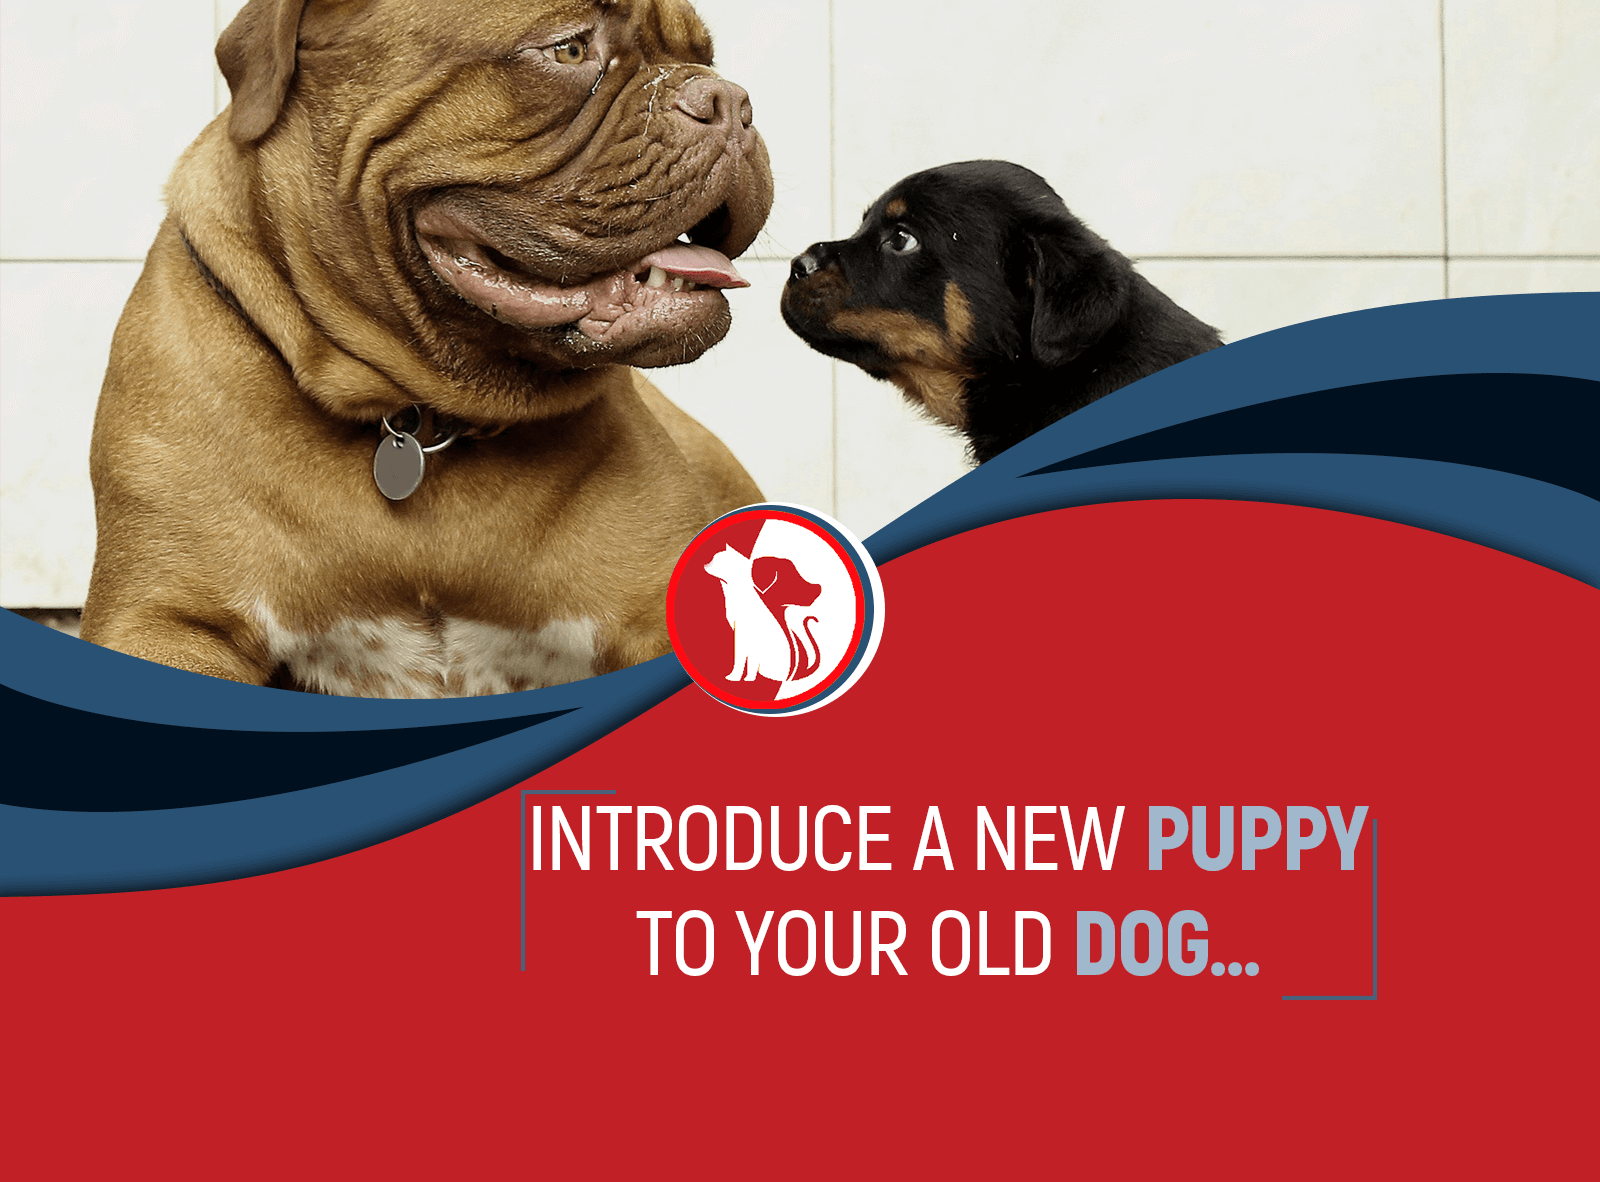 How to Introduce a New Puppy to Your Old Dog